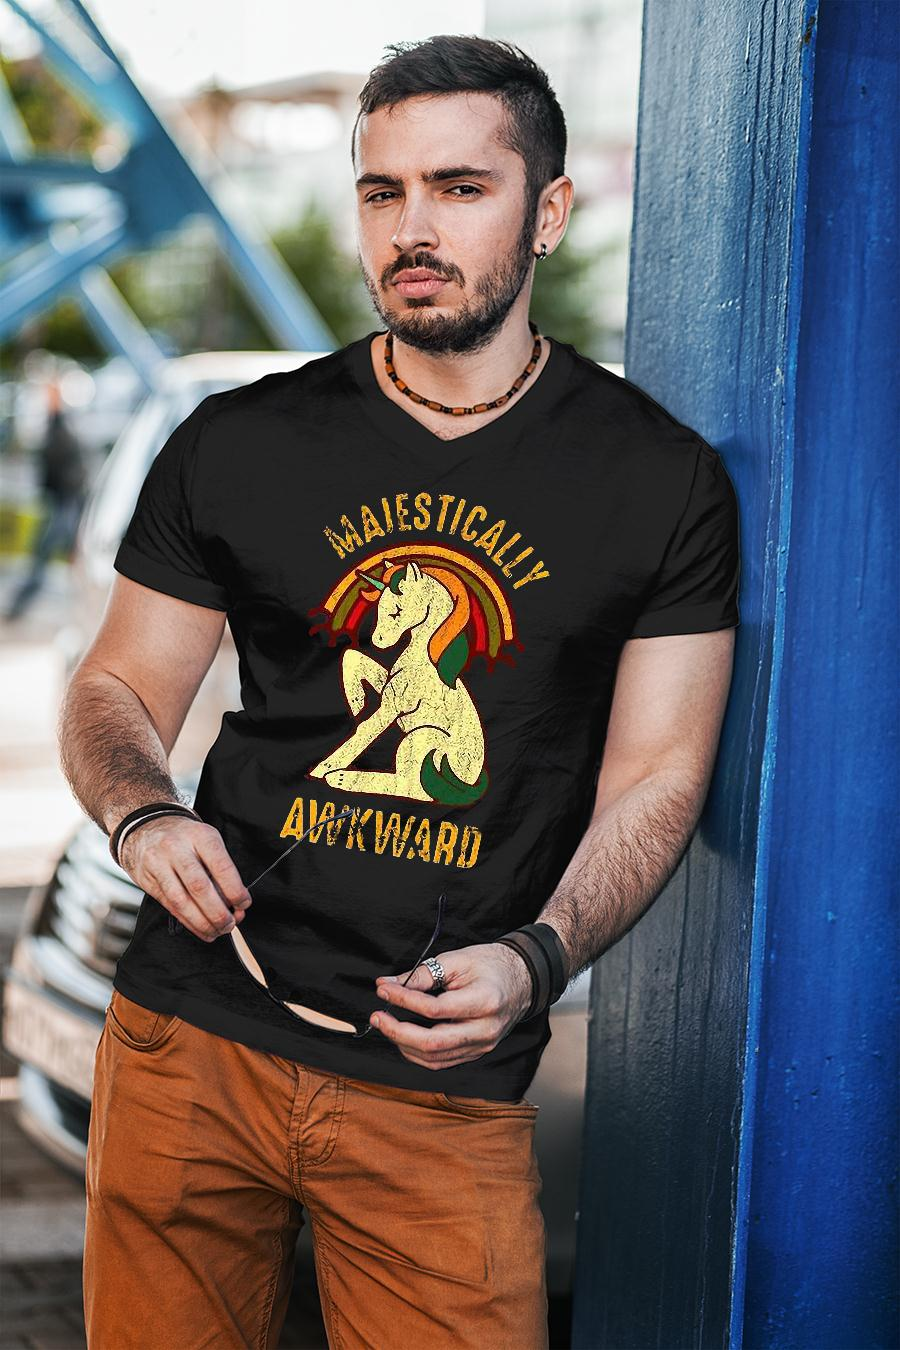 Unicorn Majestically Awkward Shirt unisex